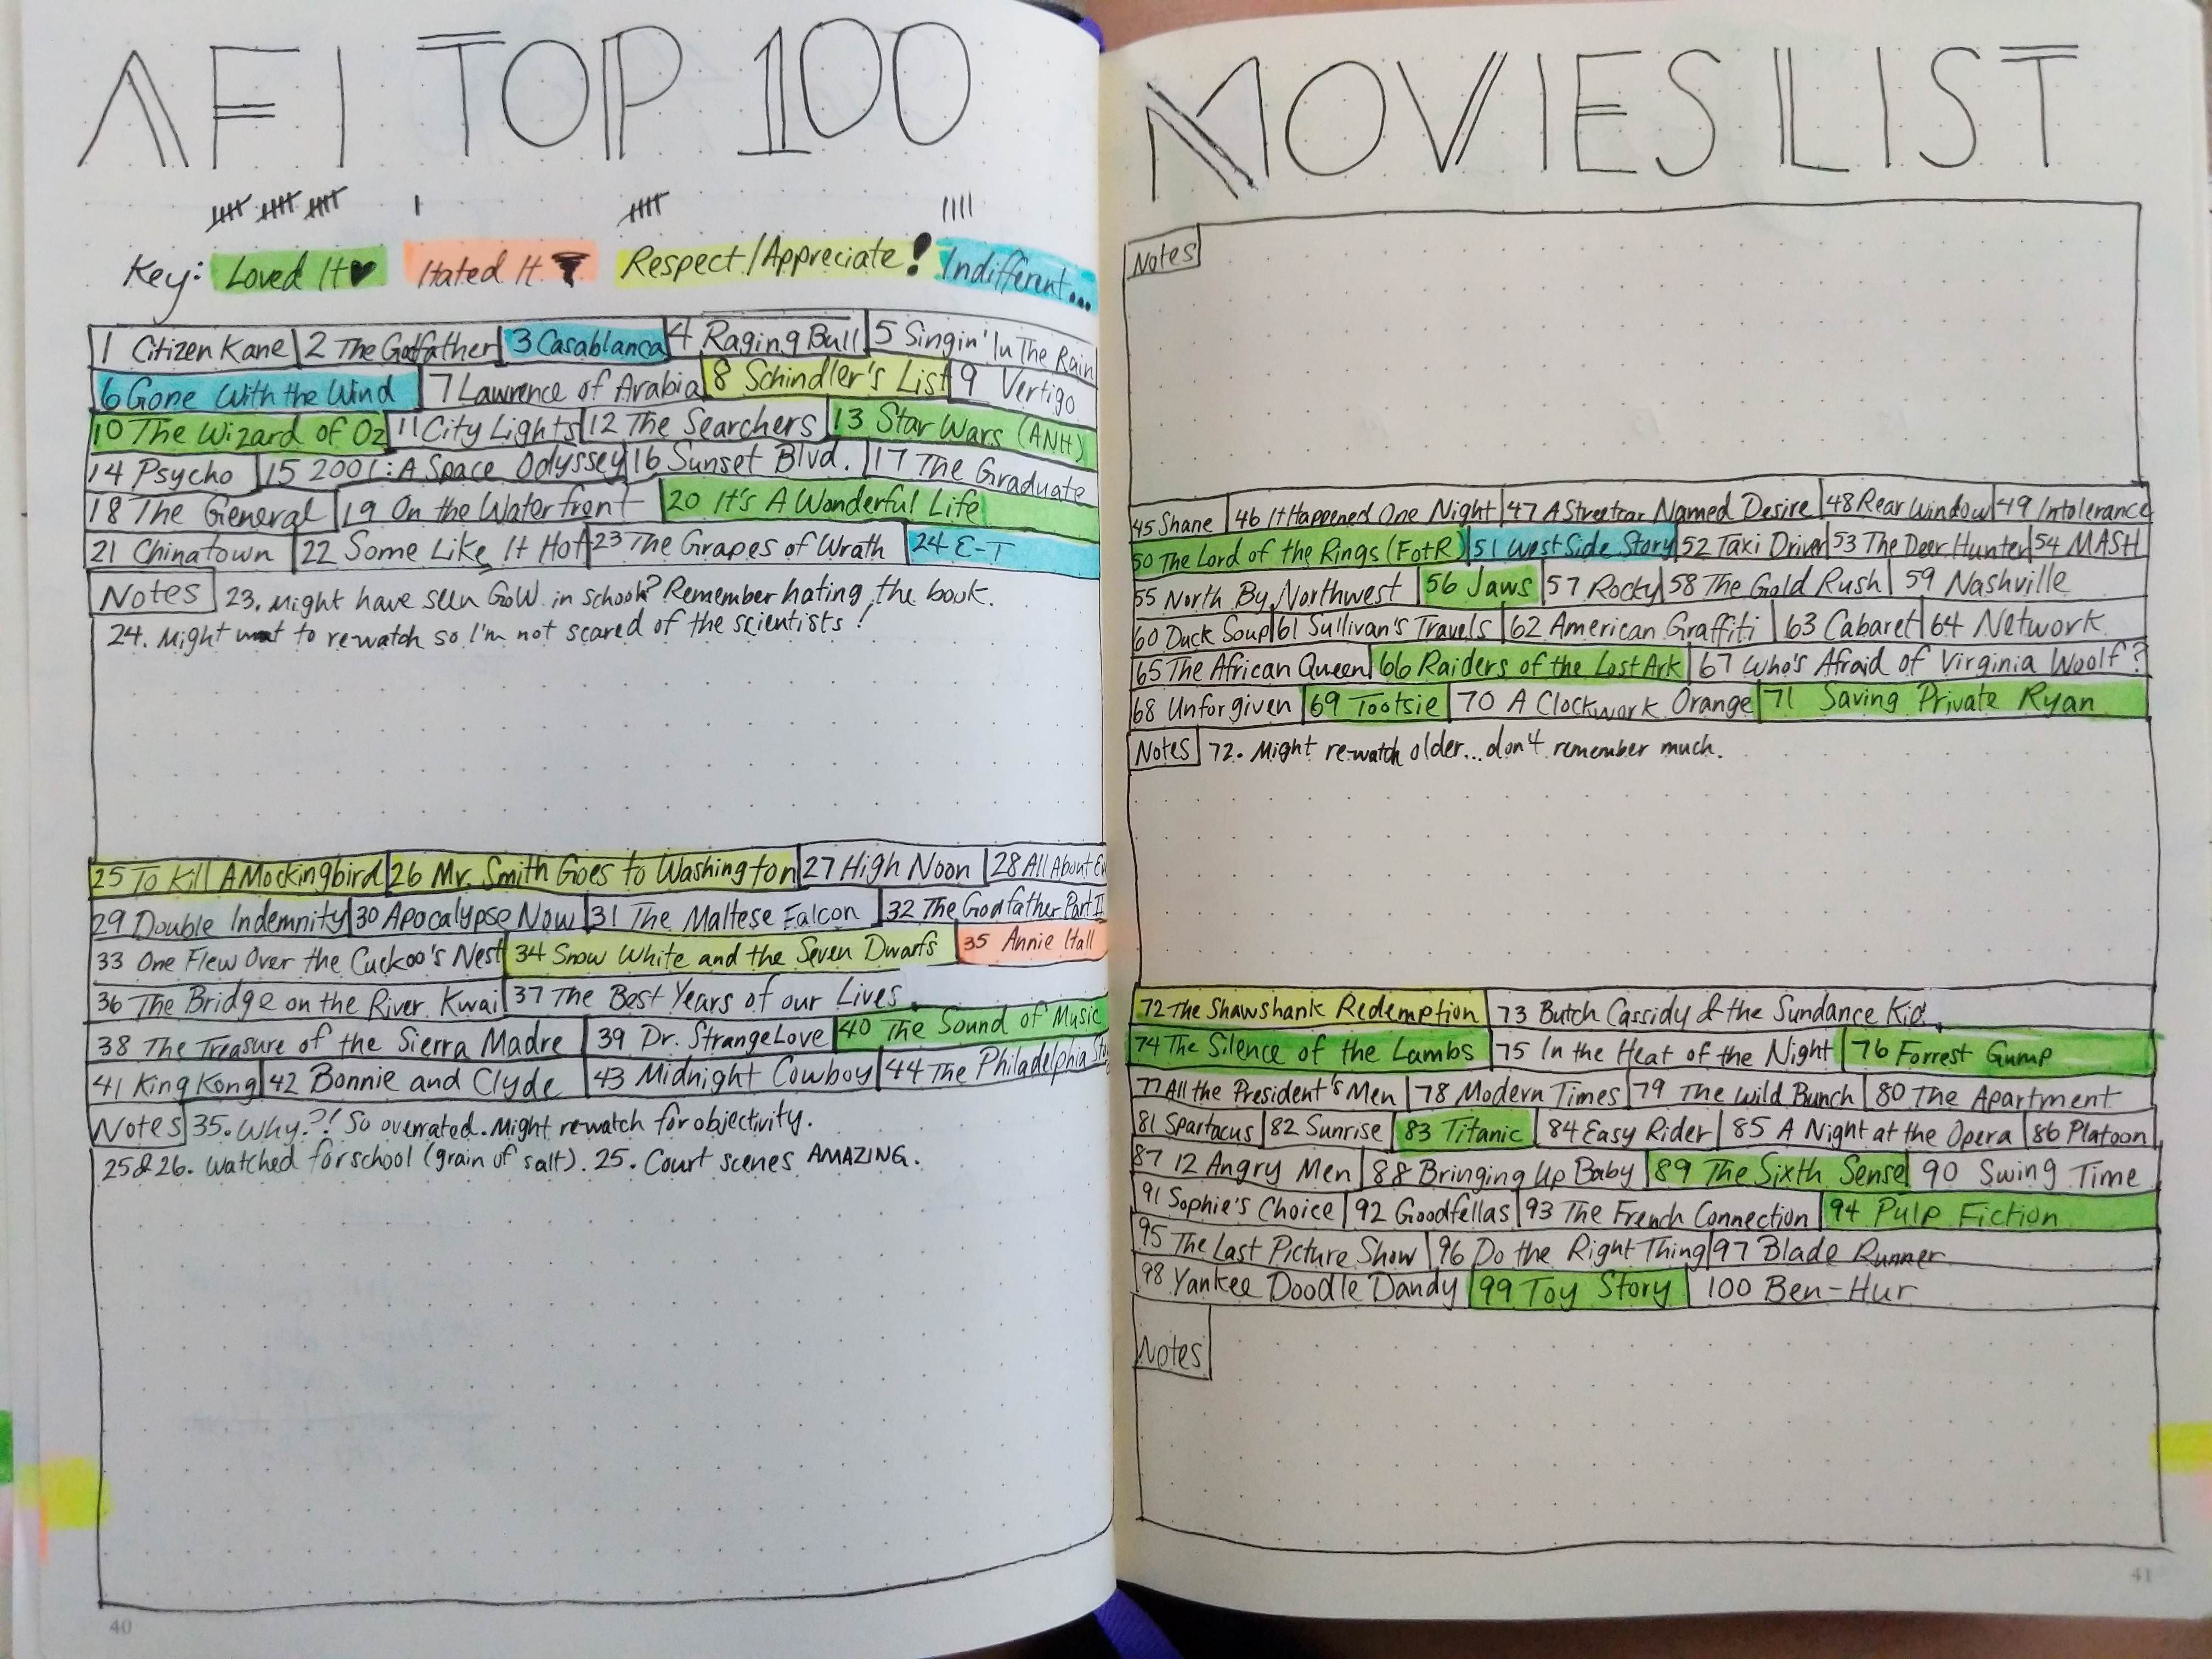 Top 100 Afi Movies Tracker Movie Tracker Bullet Journal Movies